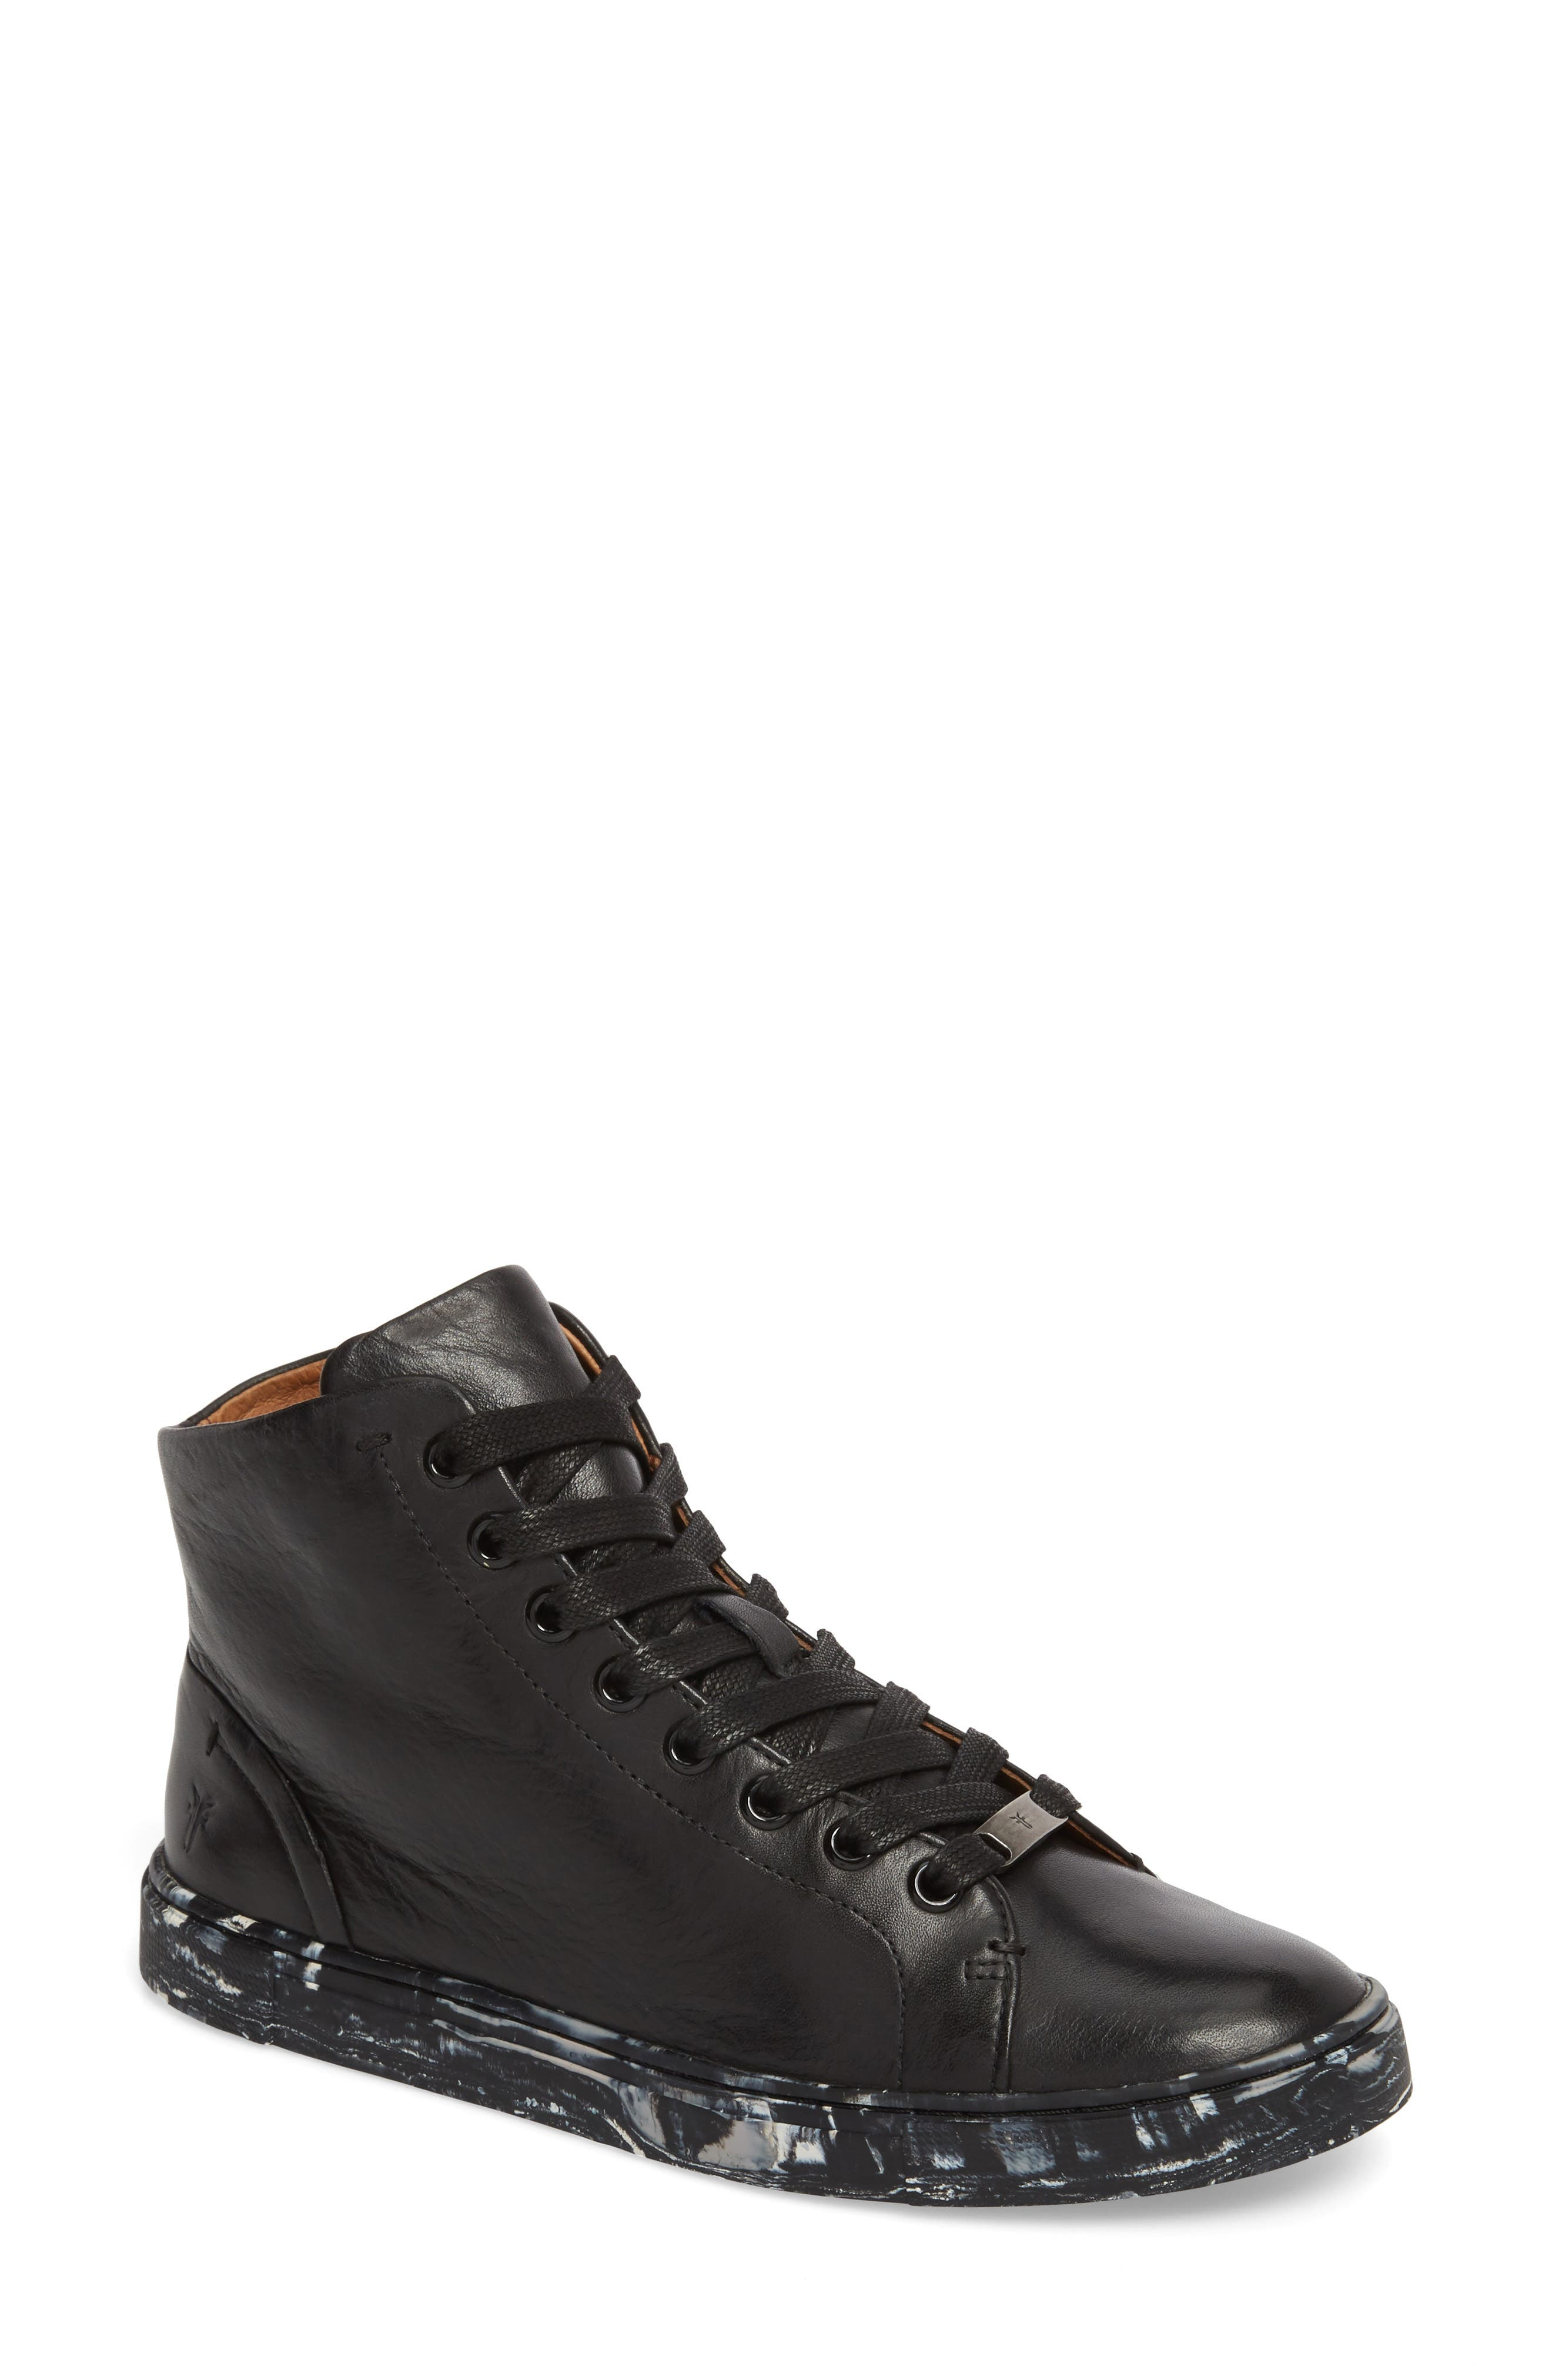 Ivy High Top Sneaker,                             Main thumbnail 1, color,                             Black Leather